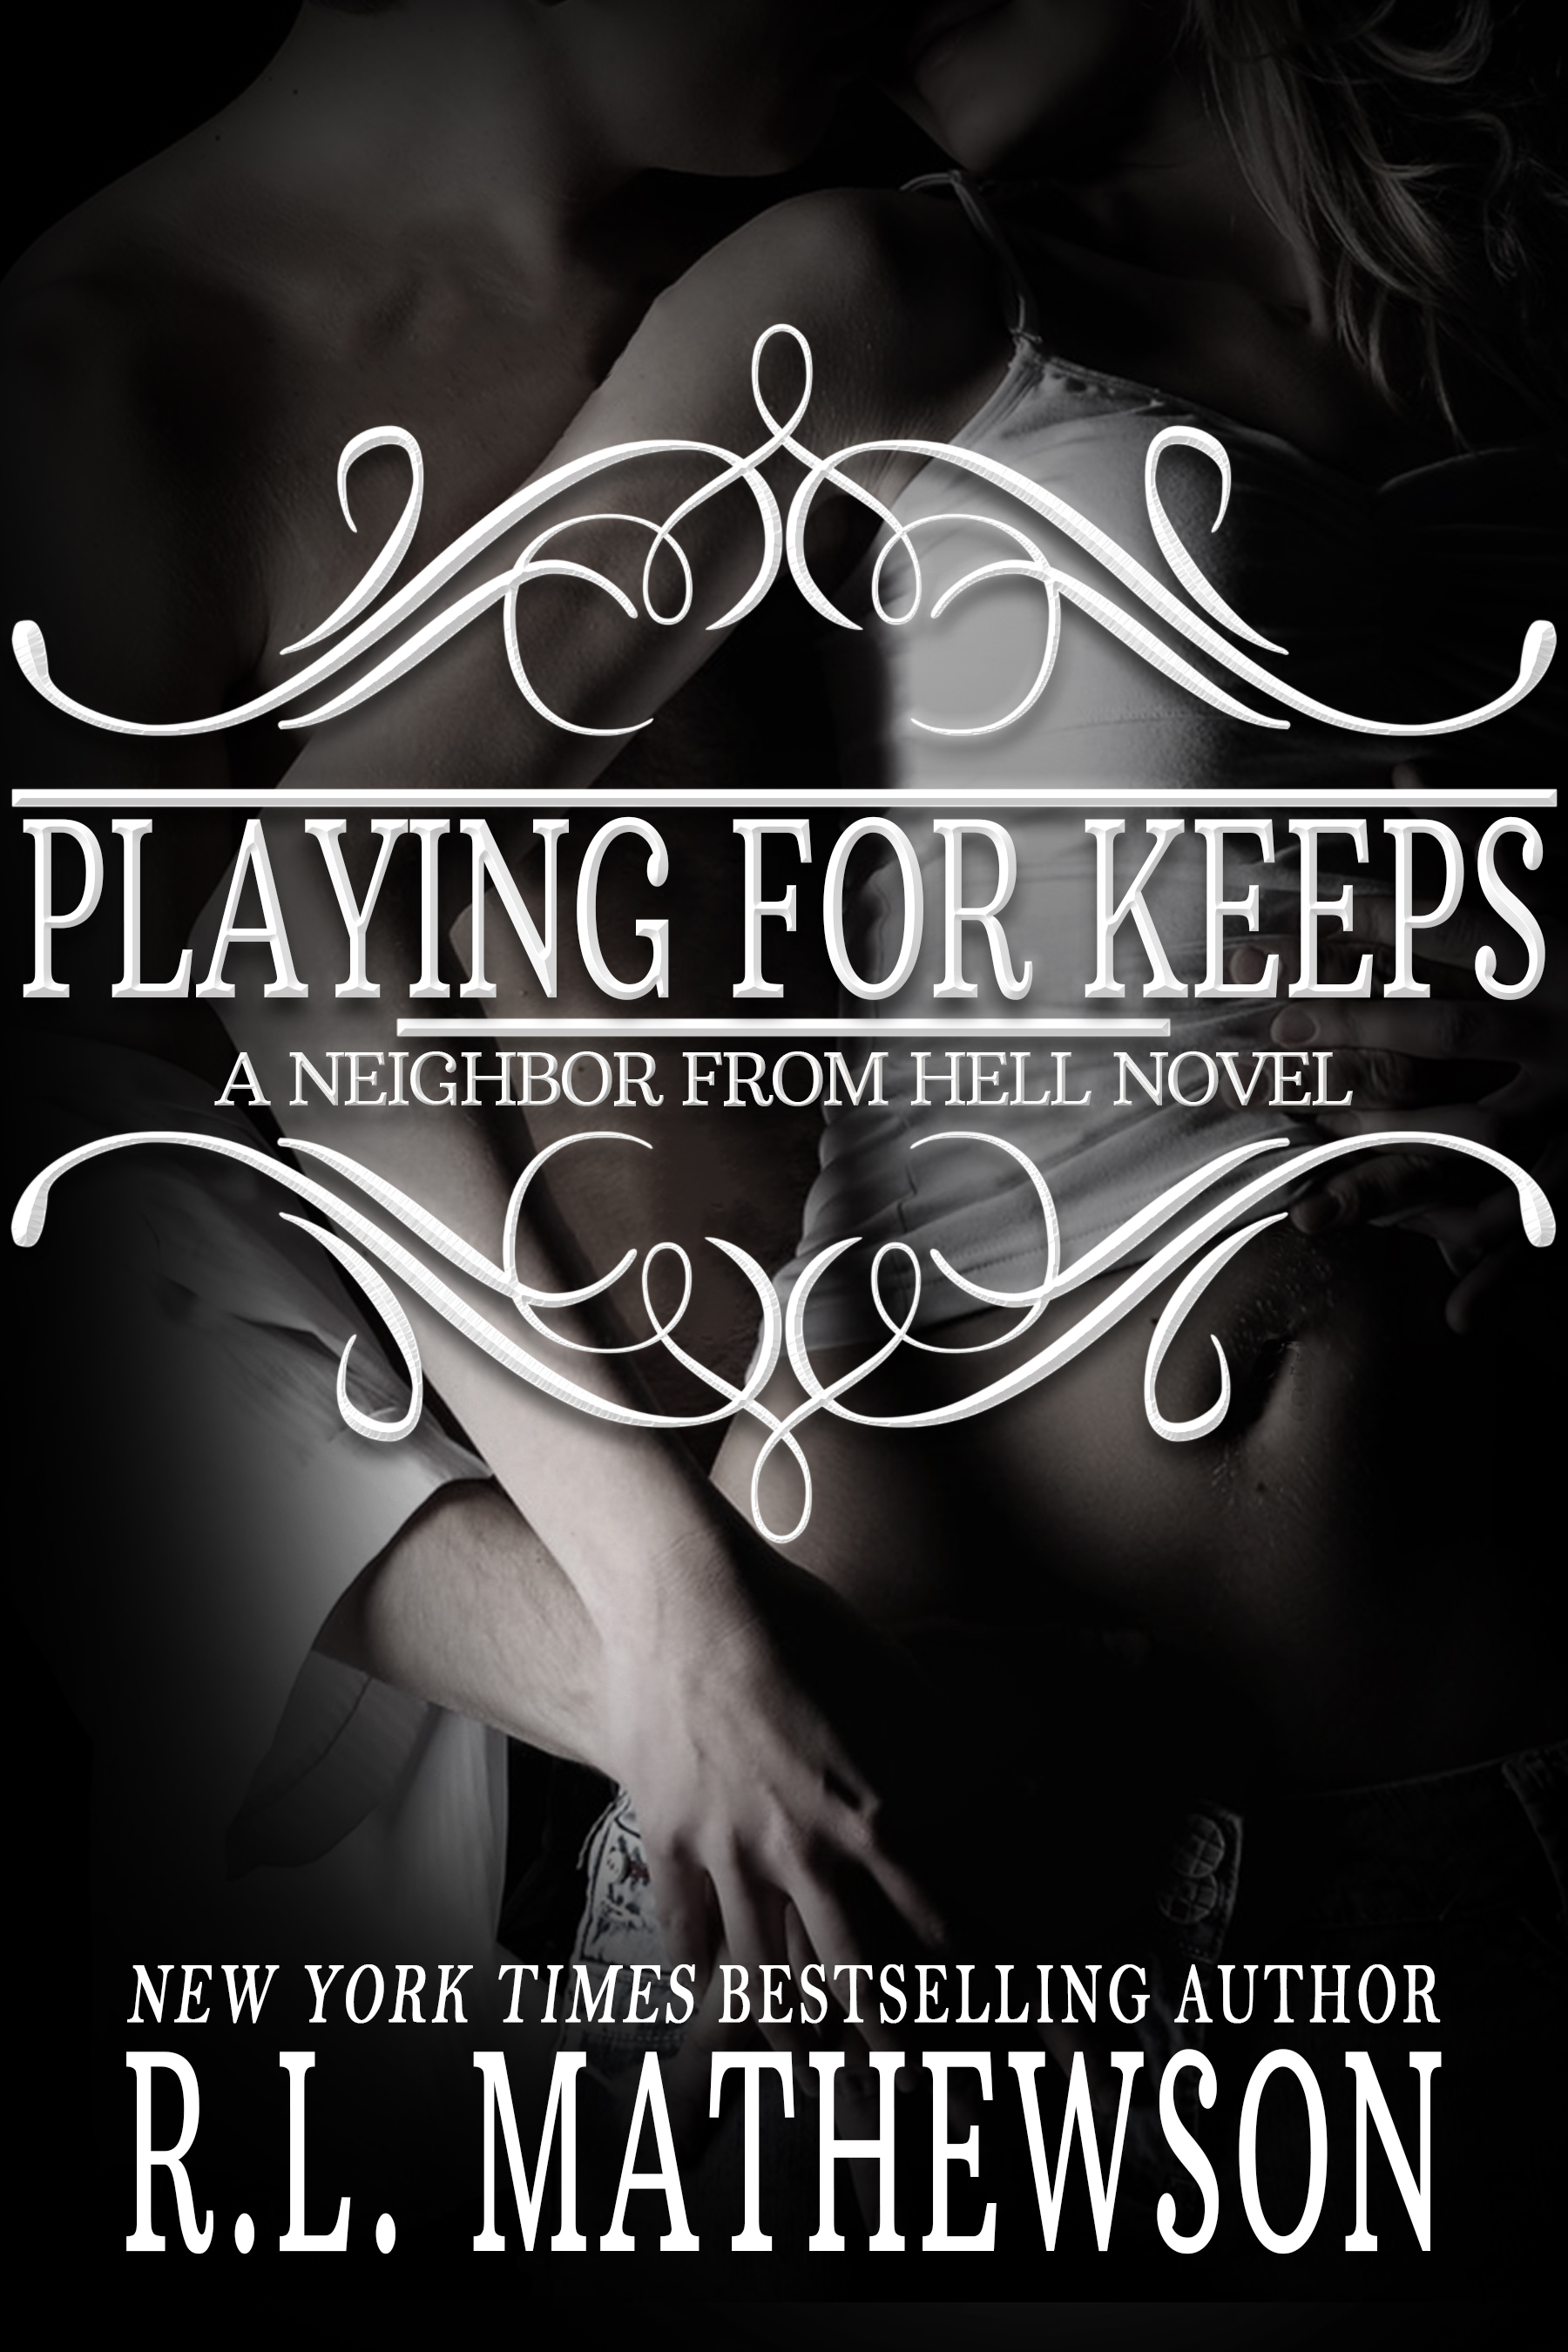 Playing for Keeps (sst-ccclxxxv)